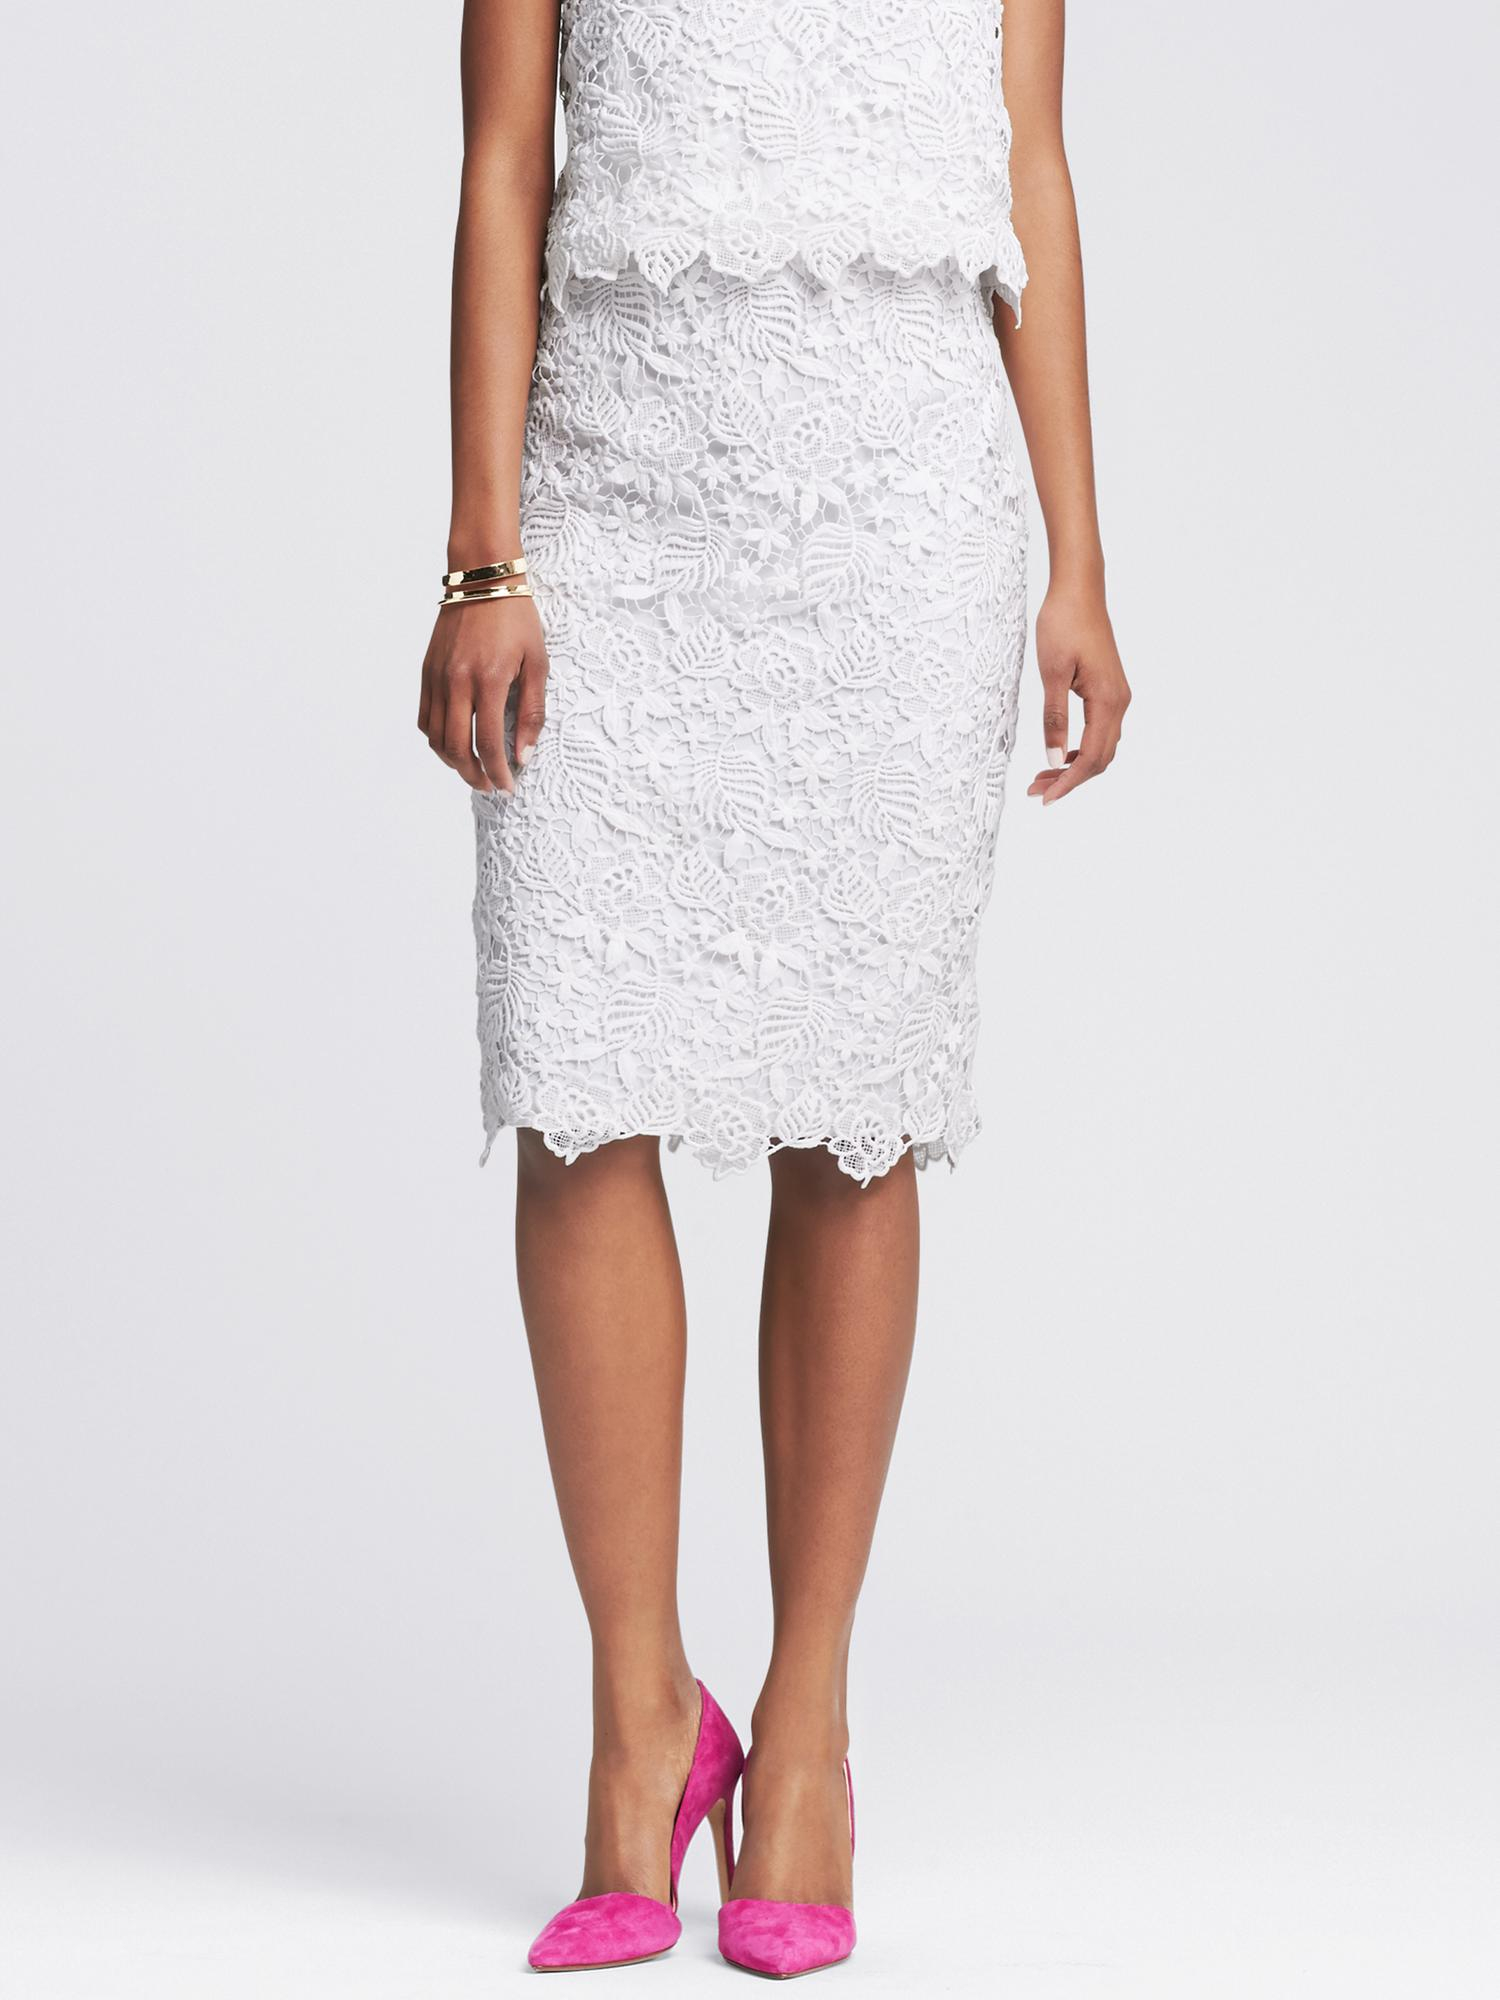 Lyst - Banana Republic Scalloped White Lace Pencil Skirt ...